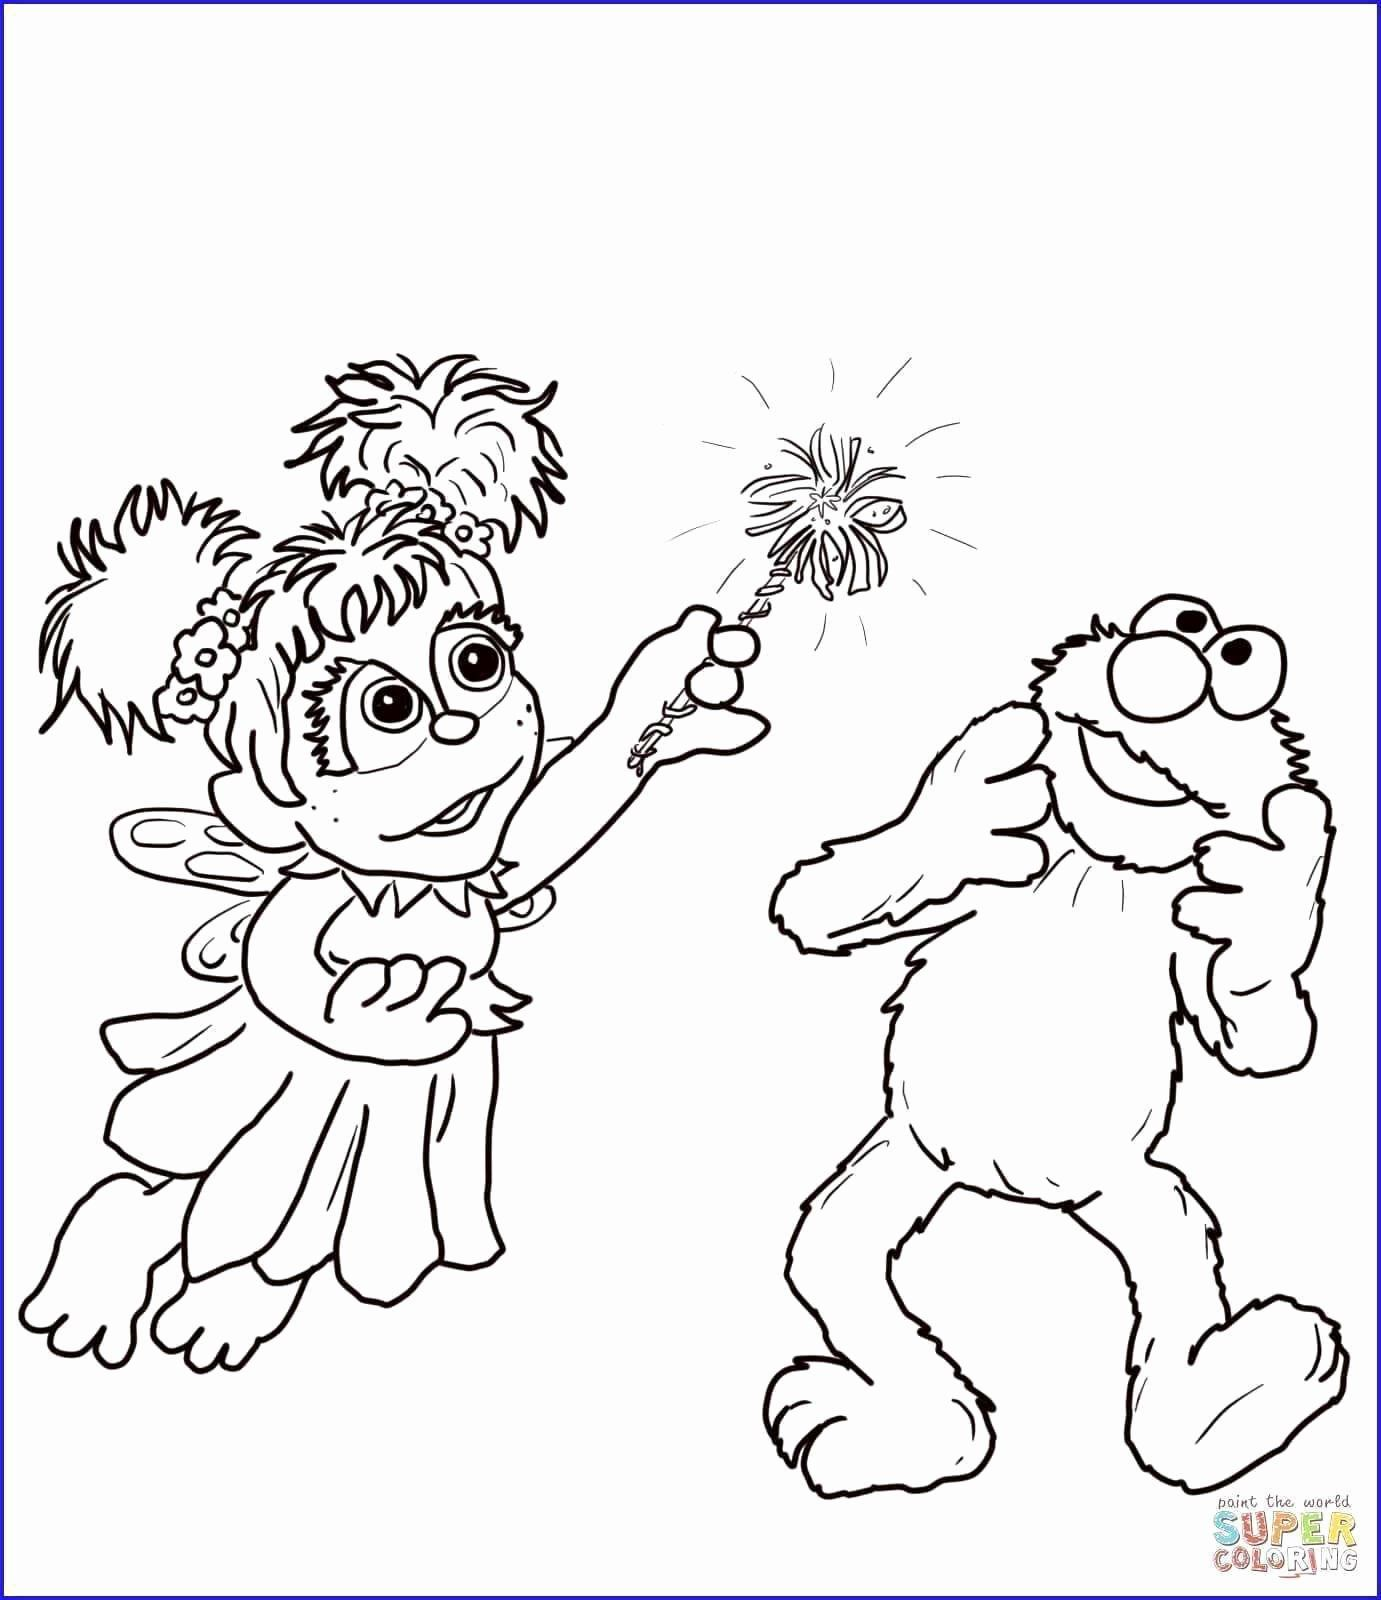 Coloring Outdoor Activities Beautiful Great Concept Elmo Coloring Book Waggapoultryub In 2020 Sesame Street Coloring Pages Elmo Coloring Pages Monster Coloring Pages